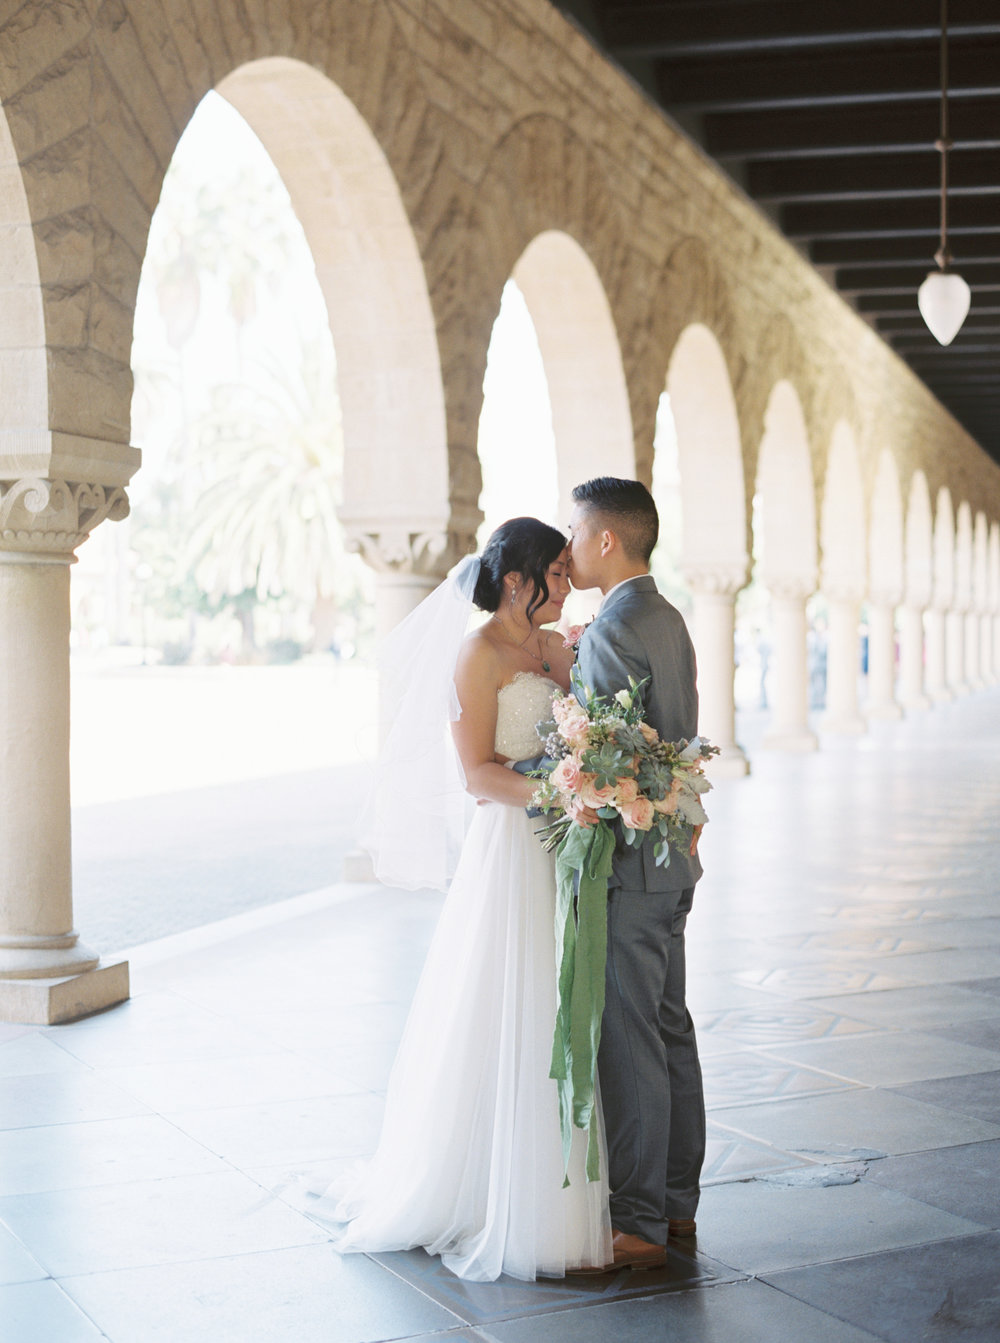 trynhphoto_wedding_photography_Standford_PaloAlto_SF_BayArea_Destination_OC_HA-40.jpg